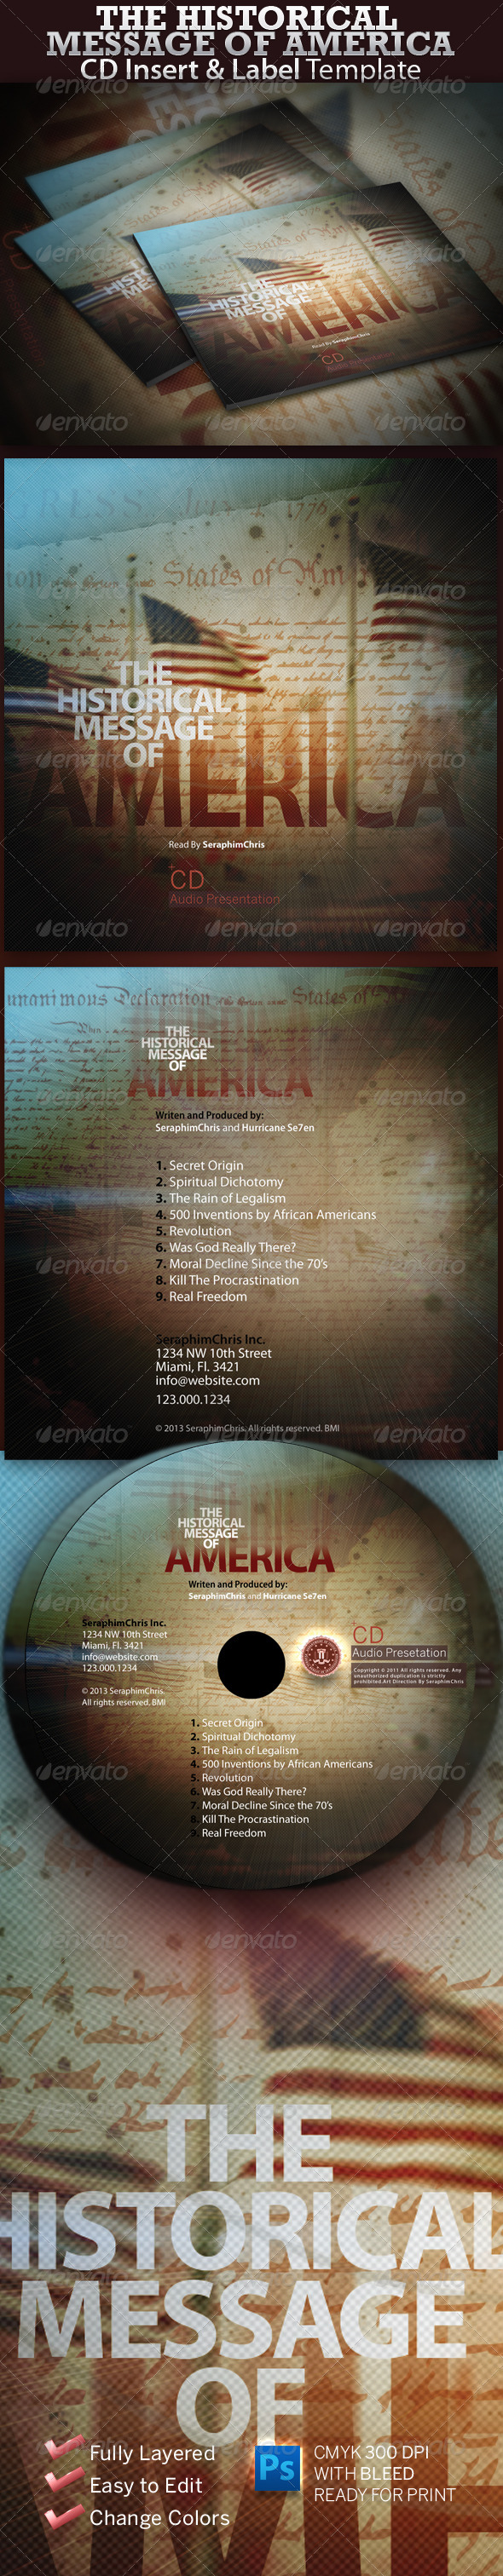 GraphicRiver The Historical Message of America CD Insert 726424